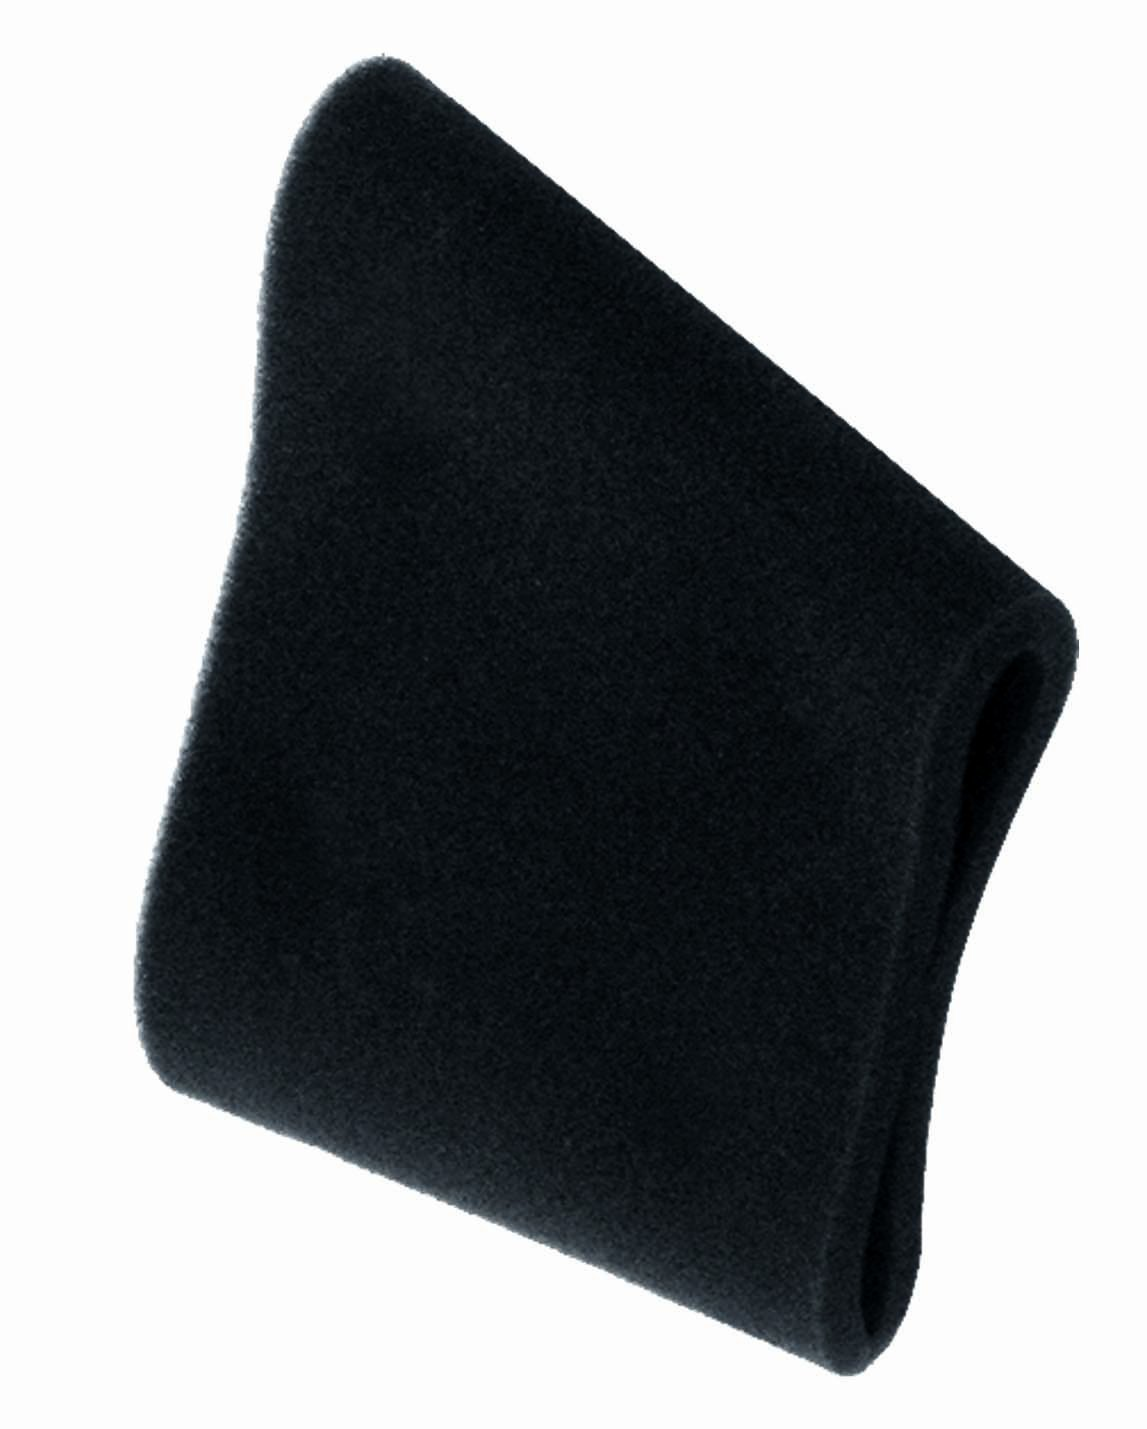 Stanley 25-1202 Foam Filter for 1-5 Gallon Wet/Dry Vacuums, 1-Pack